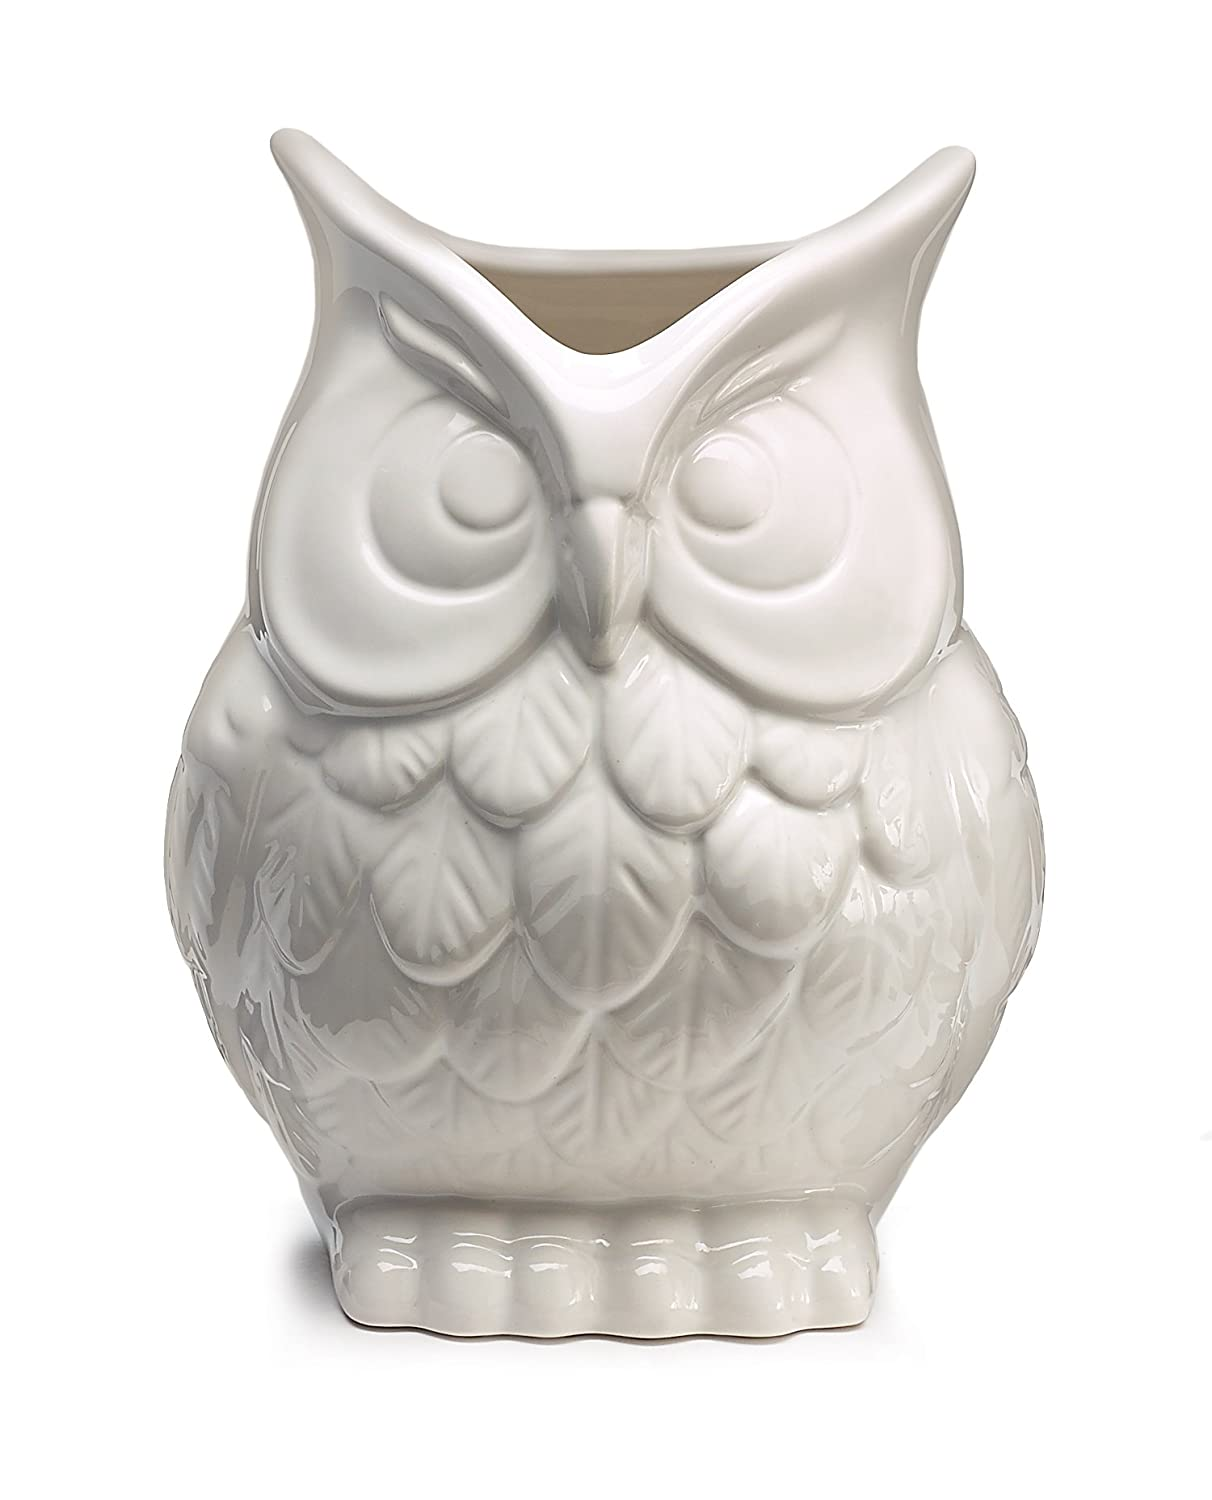 Amazon white ceramic owl vase decorative vase for owl lovers amazon white ceramic owl vase decorative vase for owl lovers home kitchen reviewsmspy